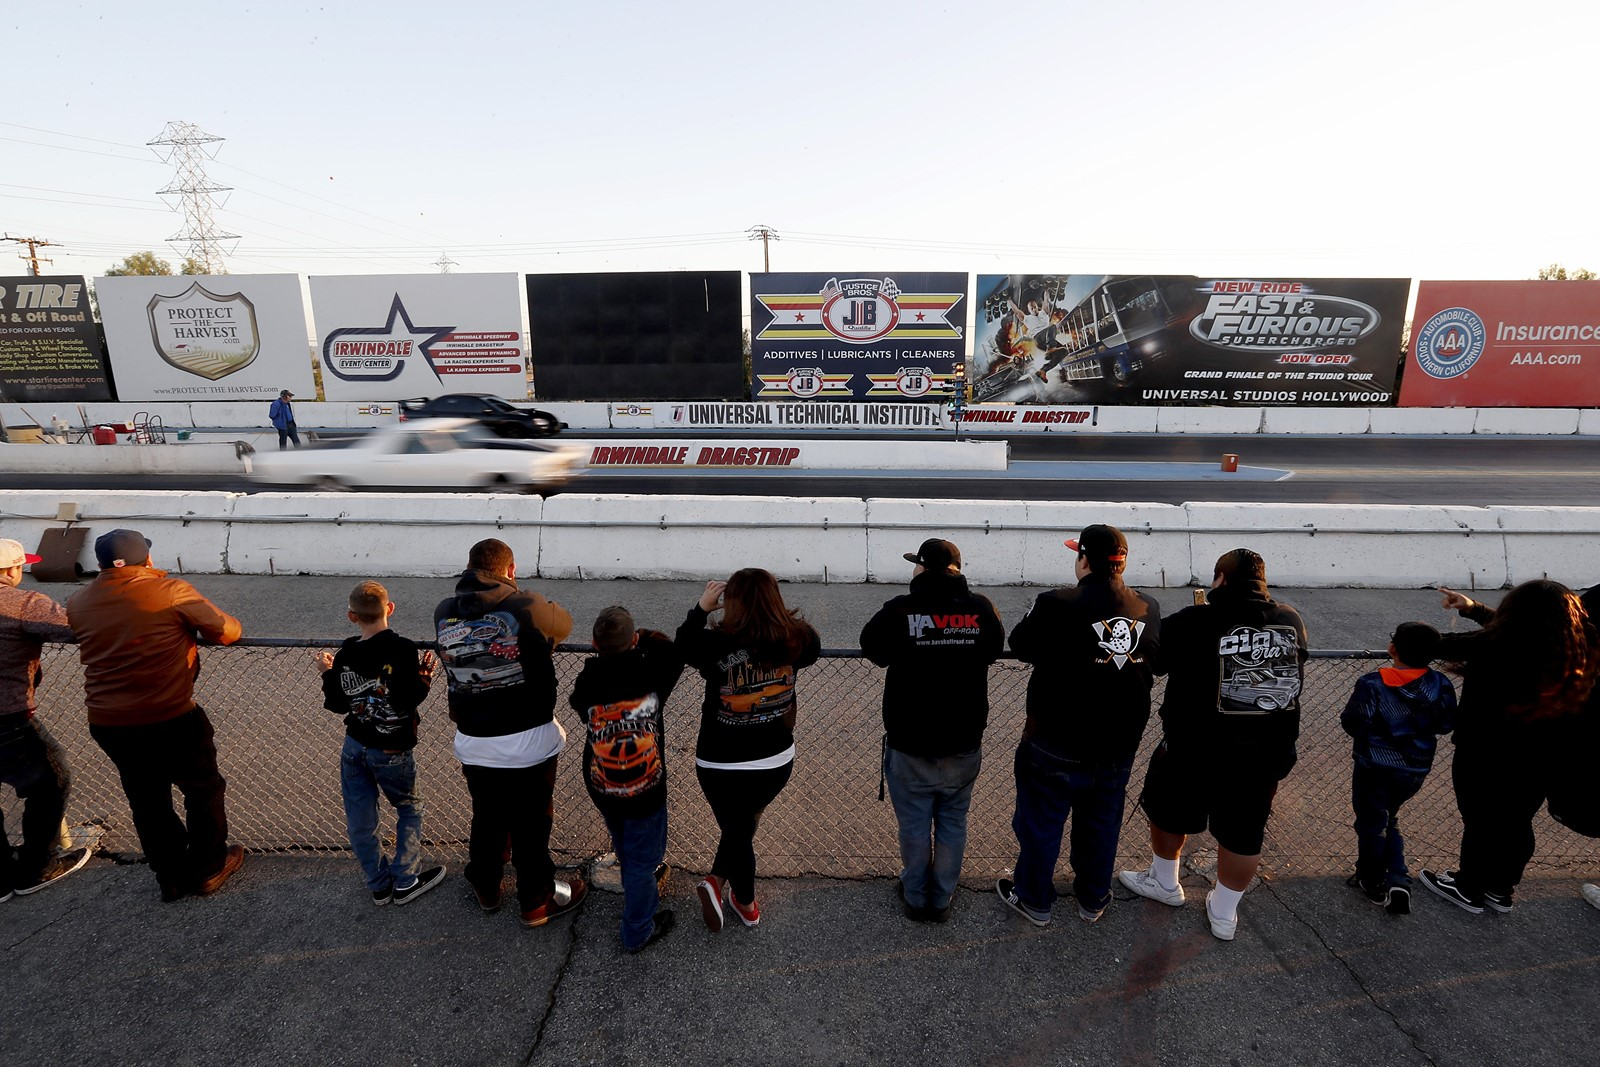 Channeled into a safe legal space away from the streets, fans watch drag races at Irwindale Speedway. — Photograph: Luis Sinco/Los Angeles Times.